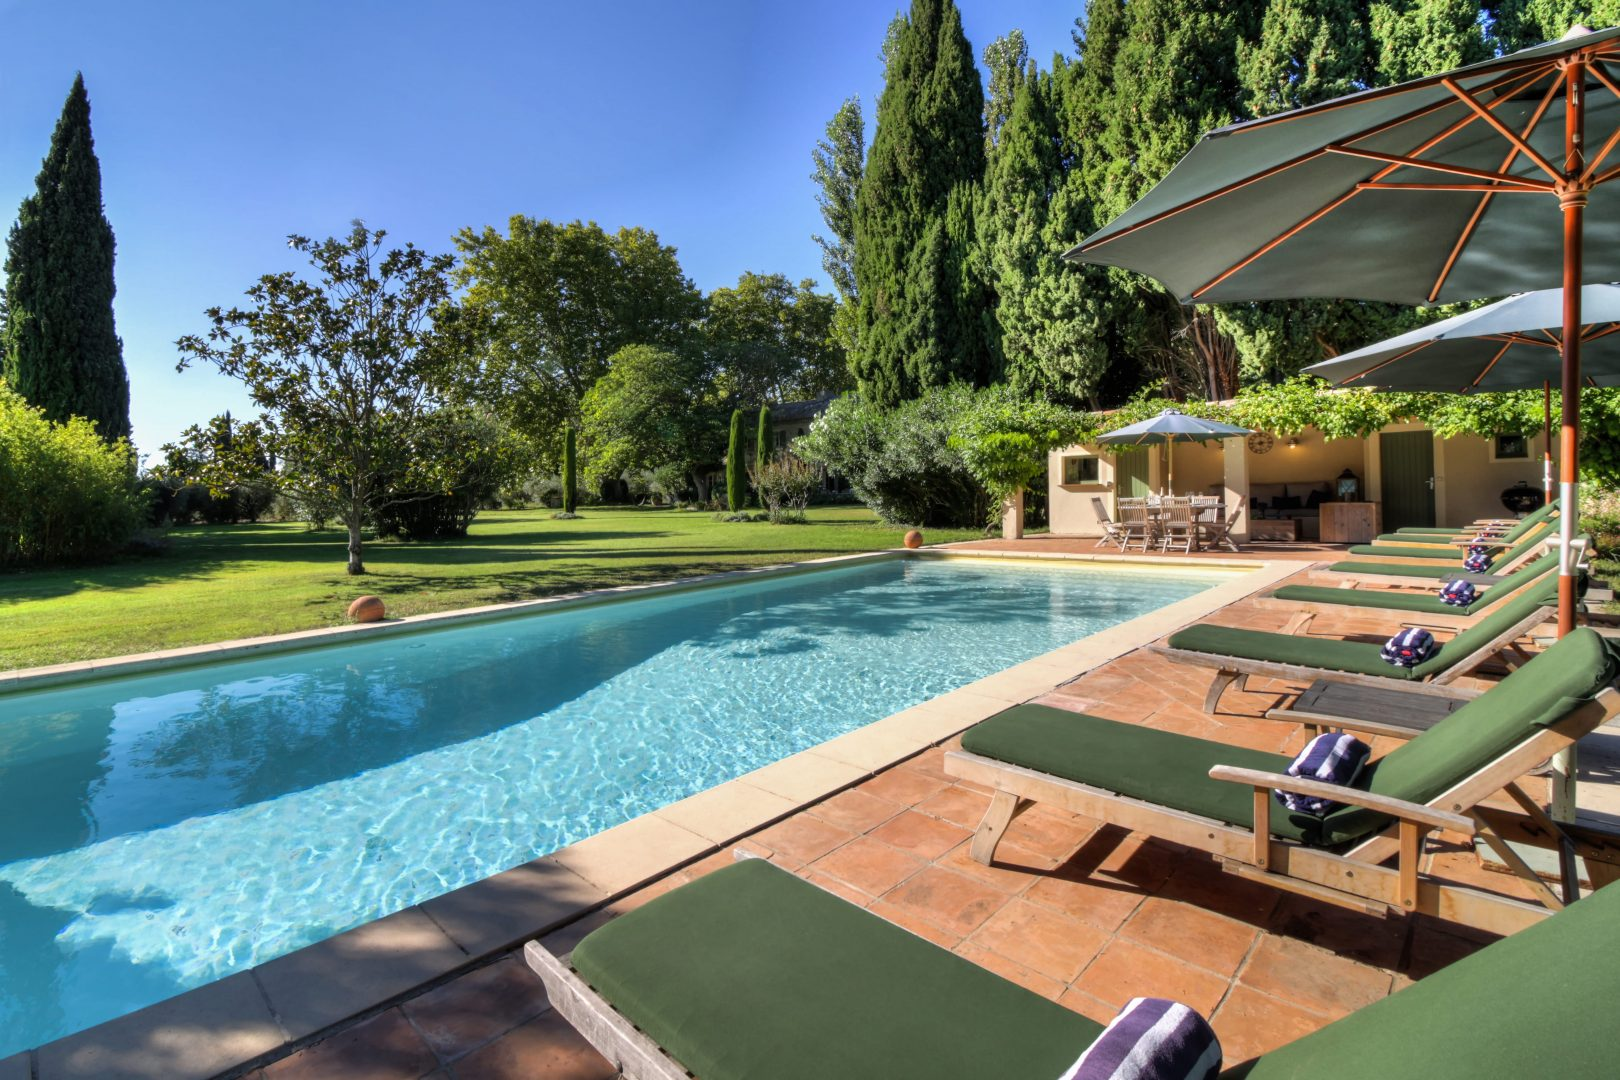 Luxury villa, private pool, near St. Remy, sleeps 12, air conditioning, child friendly